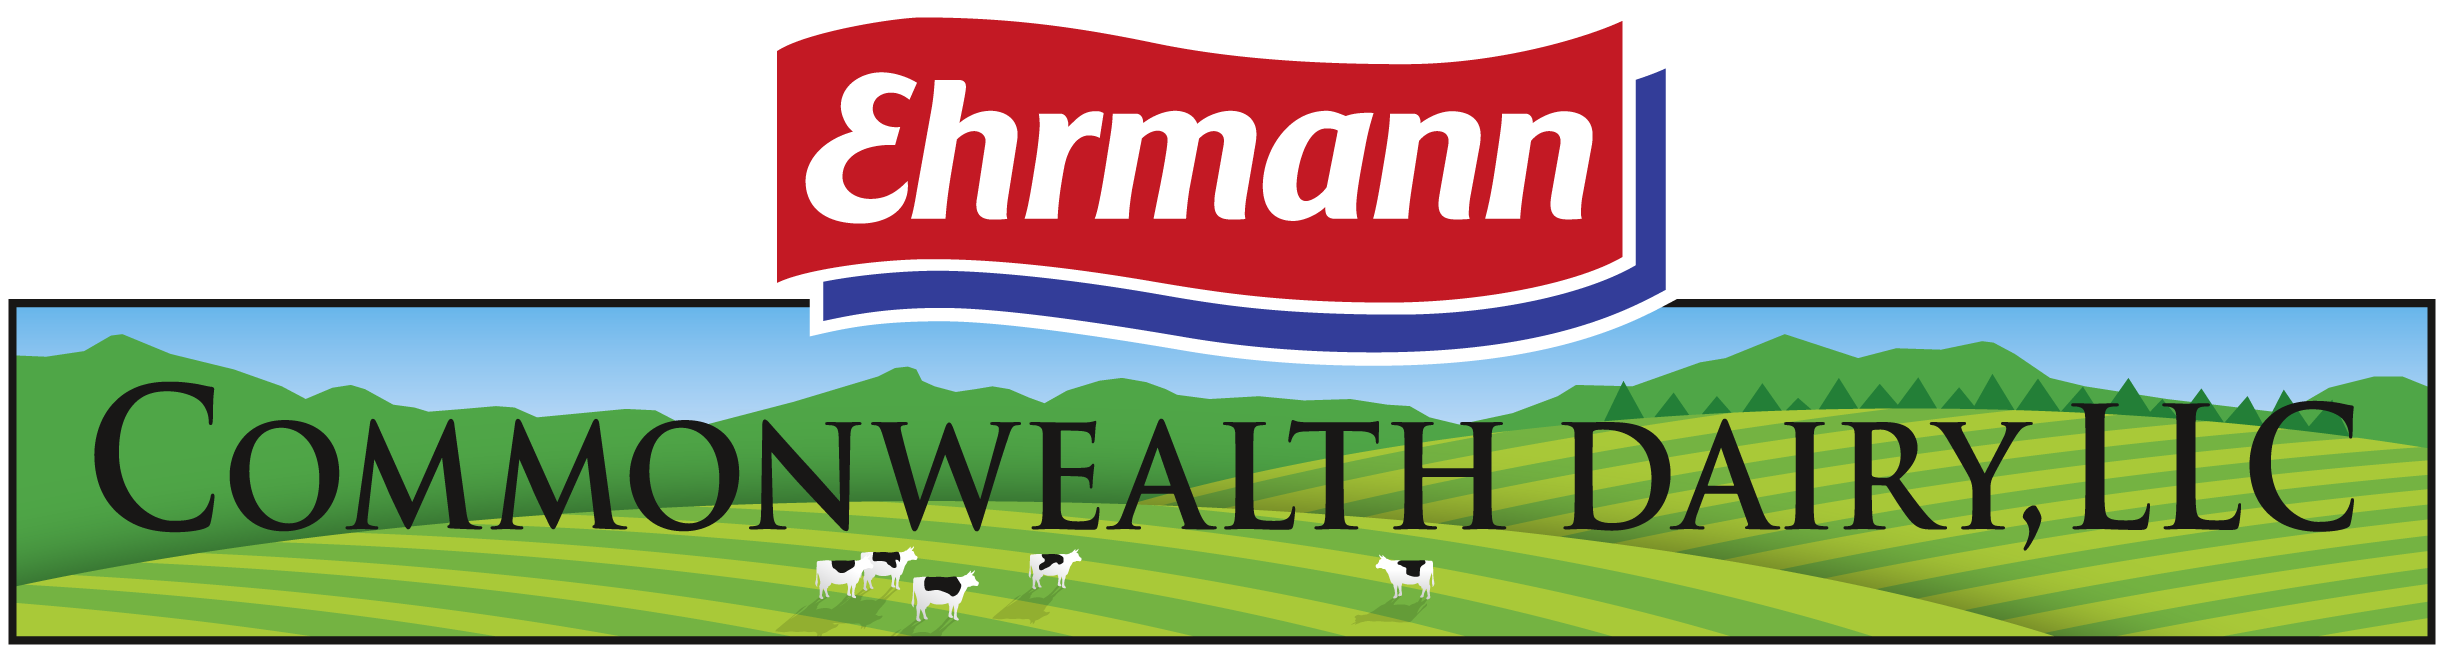 Ehrmann_Commonwealth_Logo